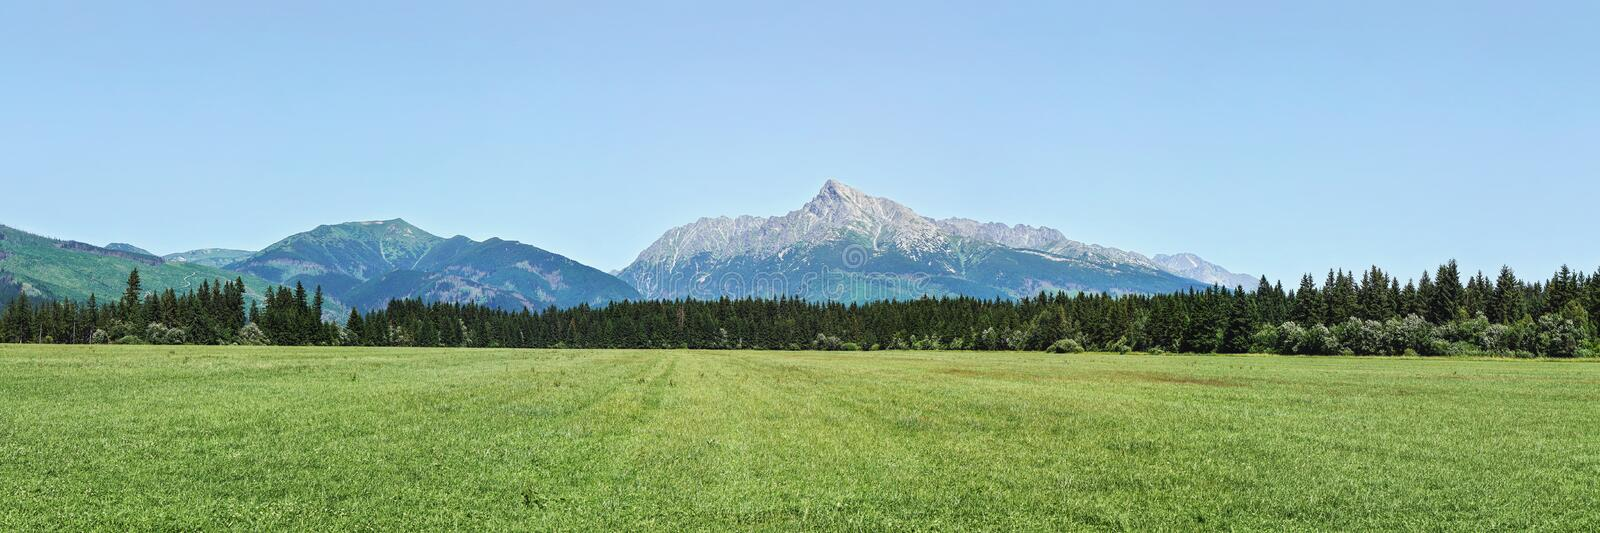 Wide panorama of green meadow with small forest and mount Krivan peak -Slovak symbol - in distance, clear sky above royalty free stock image